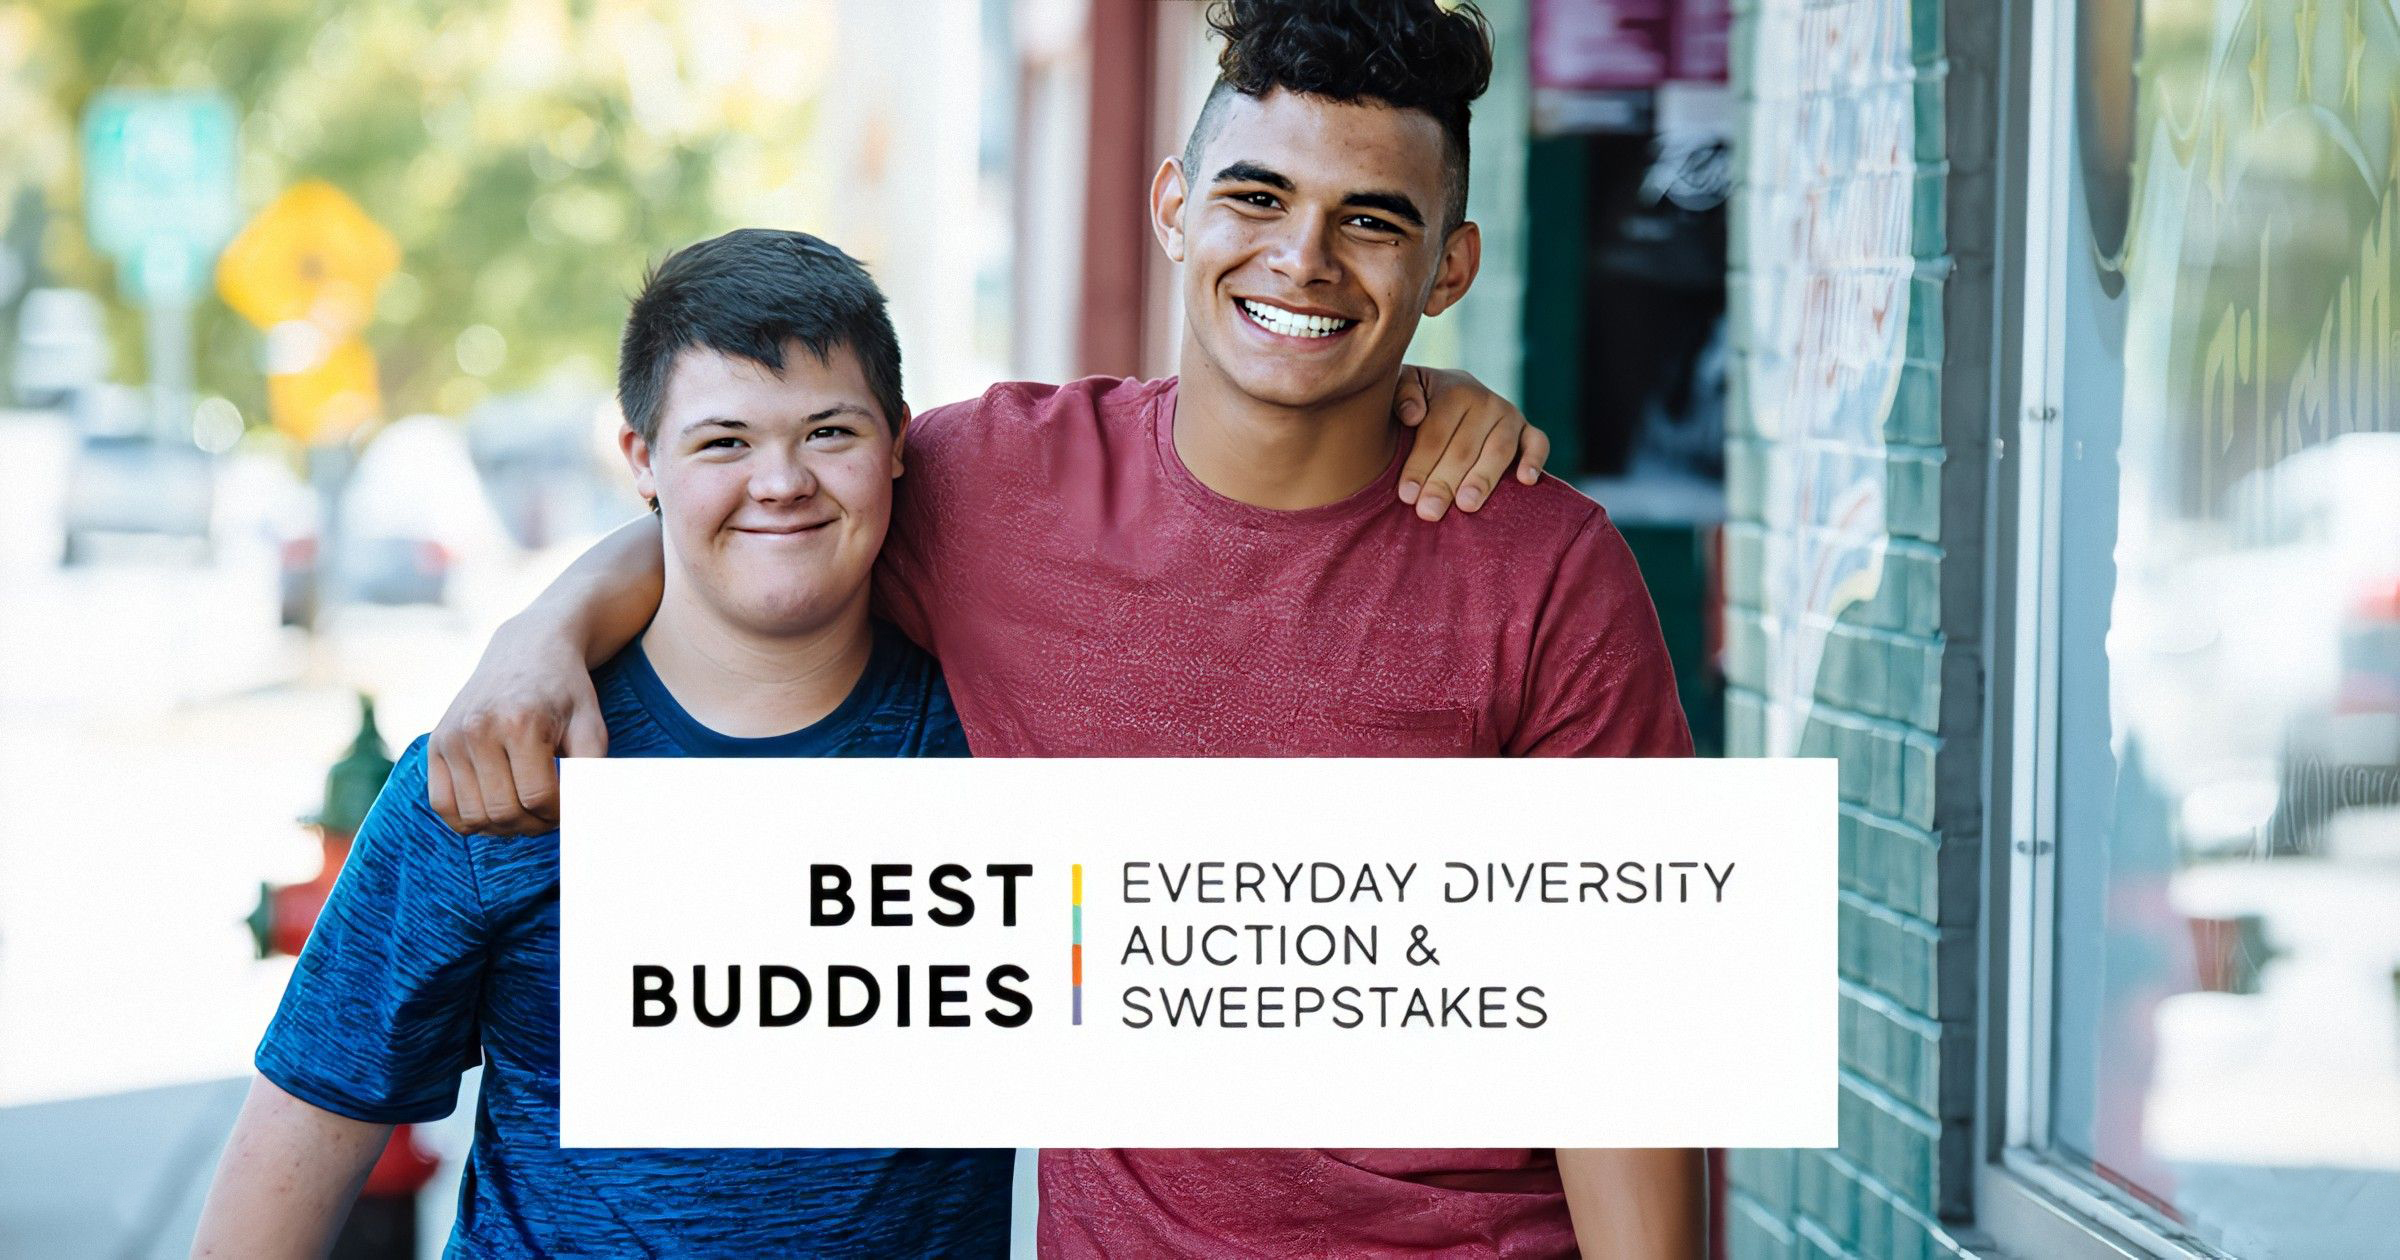 Everyday Diversity Auction & Sweepstakes logo